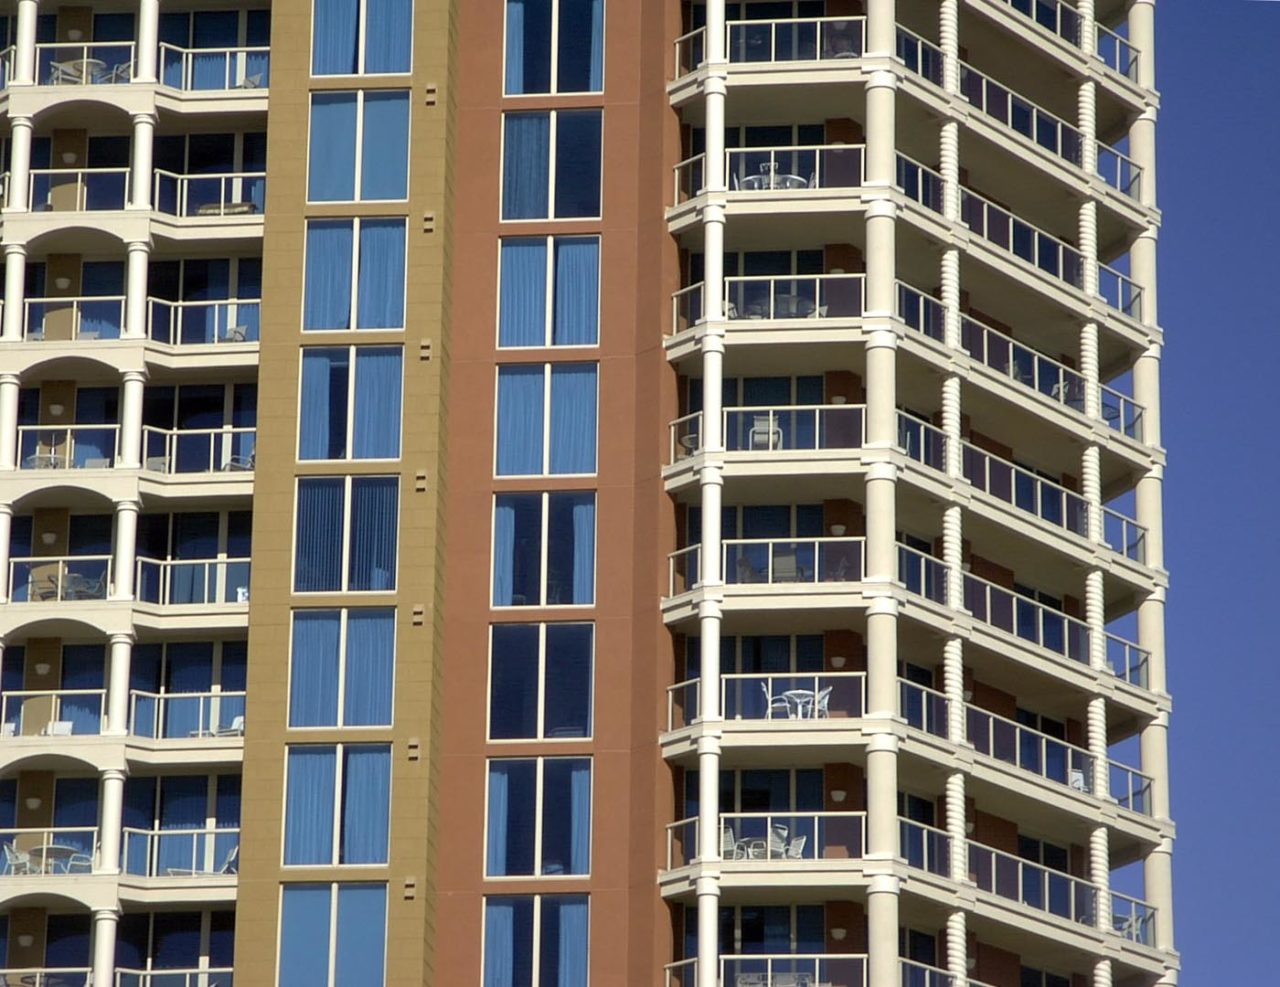 2-Line Glass Balcony Railing Often used in high-rise condominium and resort projects